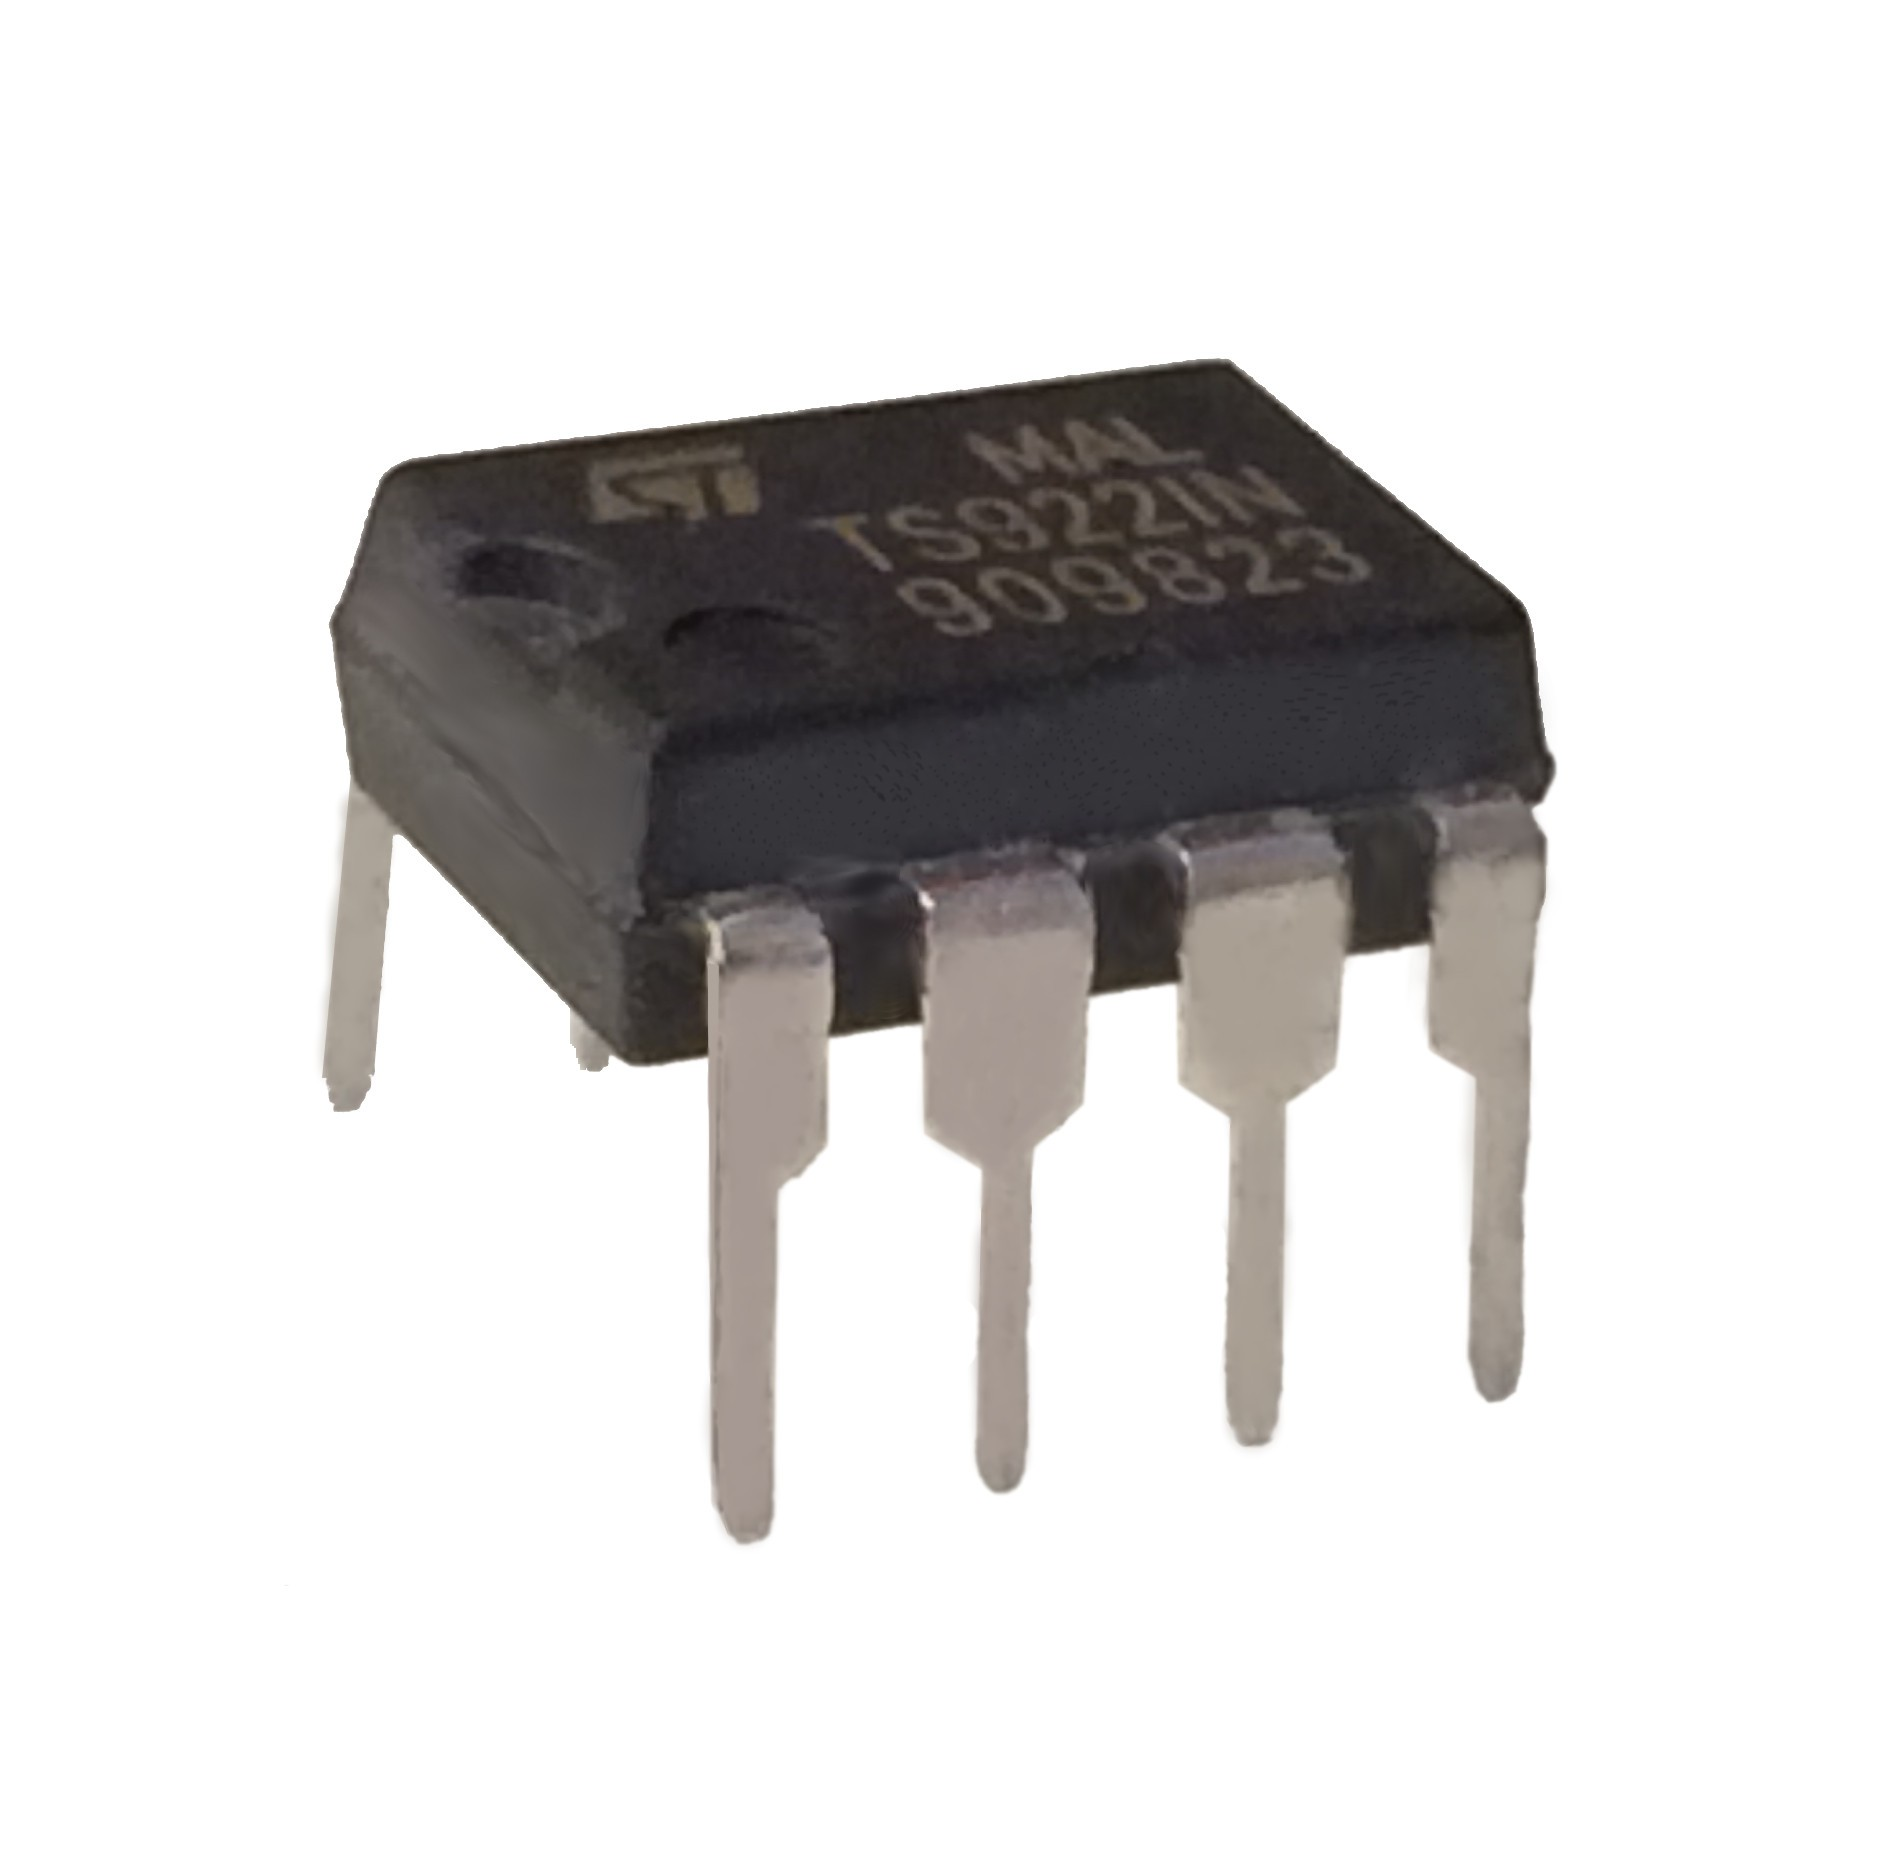 299 Op Amp Operational Amplifier Ts922 Tinkersphere The Amplifiers Electronics